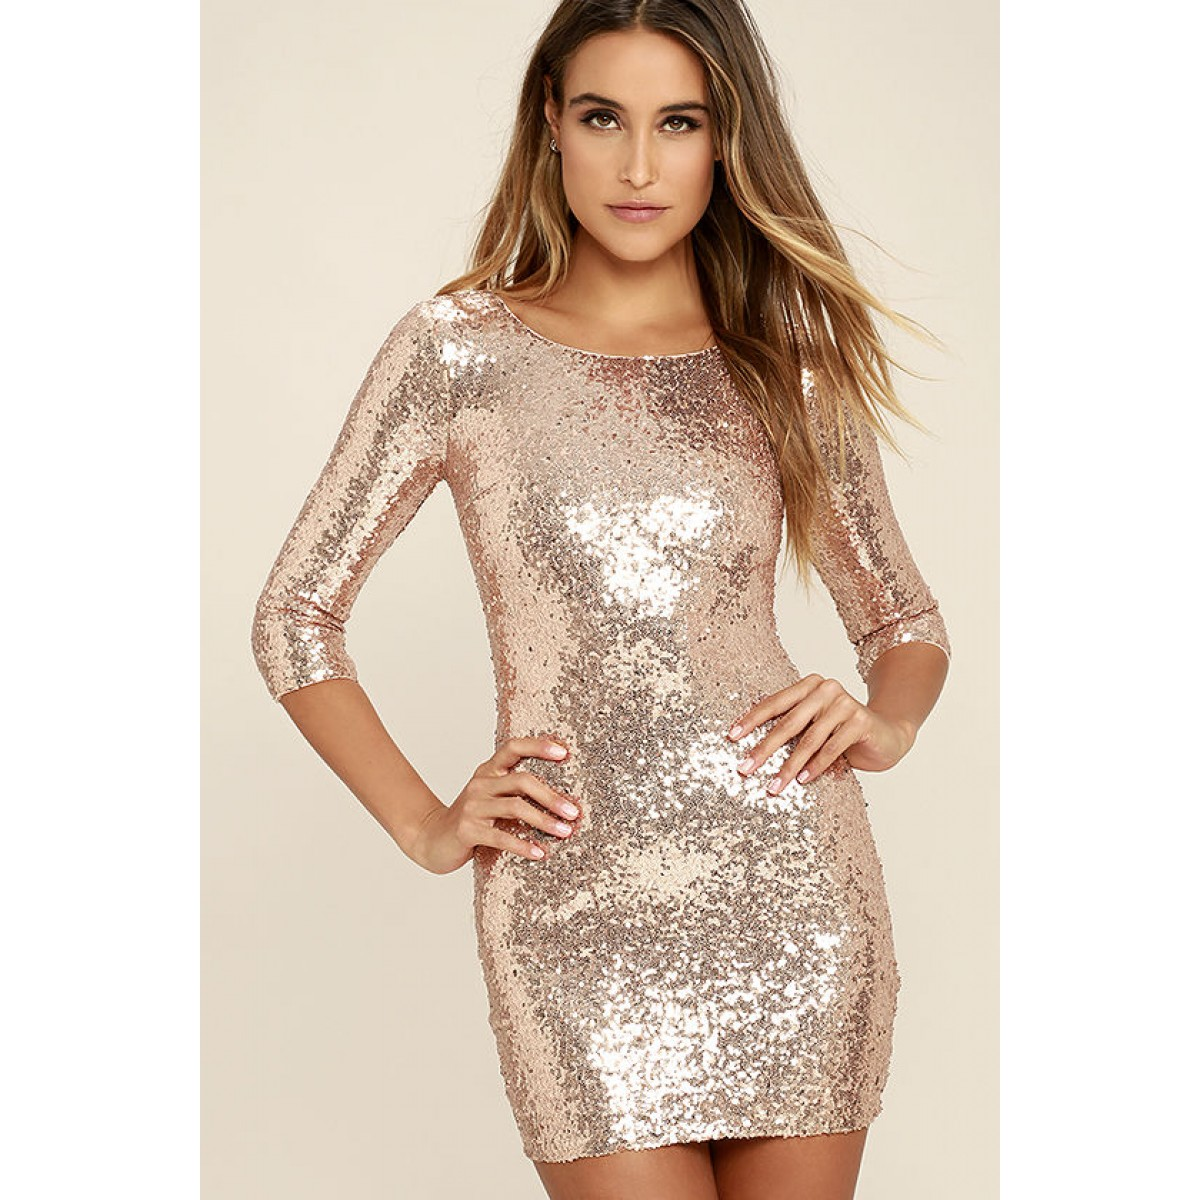 4a14d574c8 ... Rose Gold Sequin Dress. Be the first to review this product.  59.00.   59.00Availability  In stock